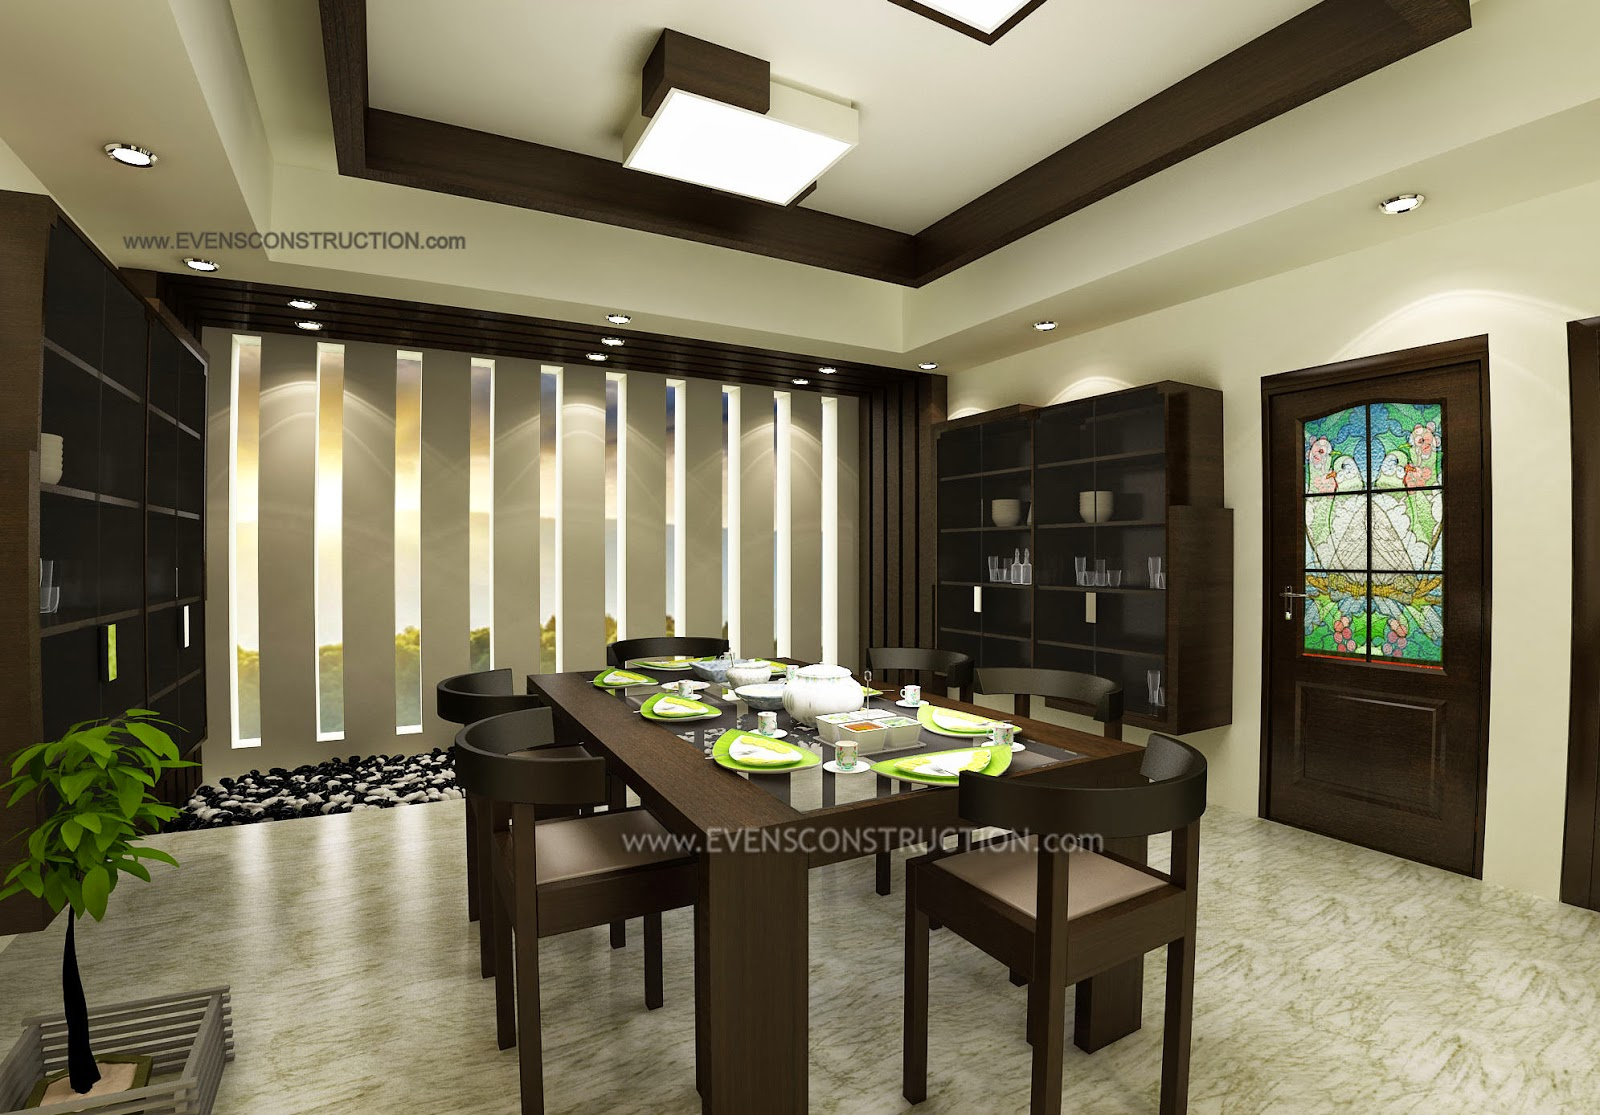 Evens construction pvt ltd modern dining room for Design dinner room